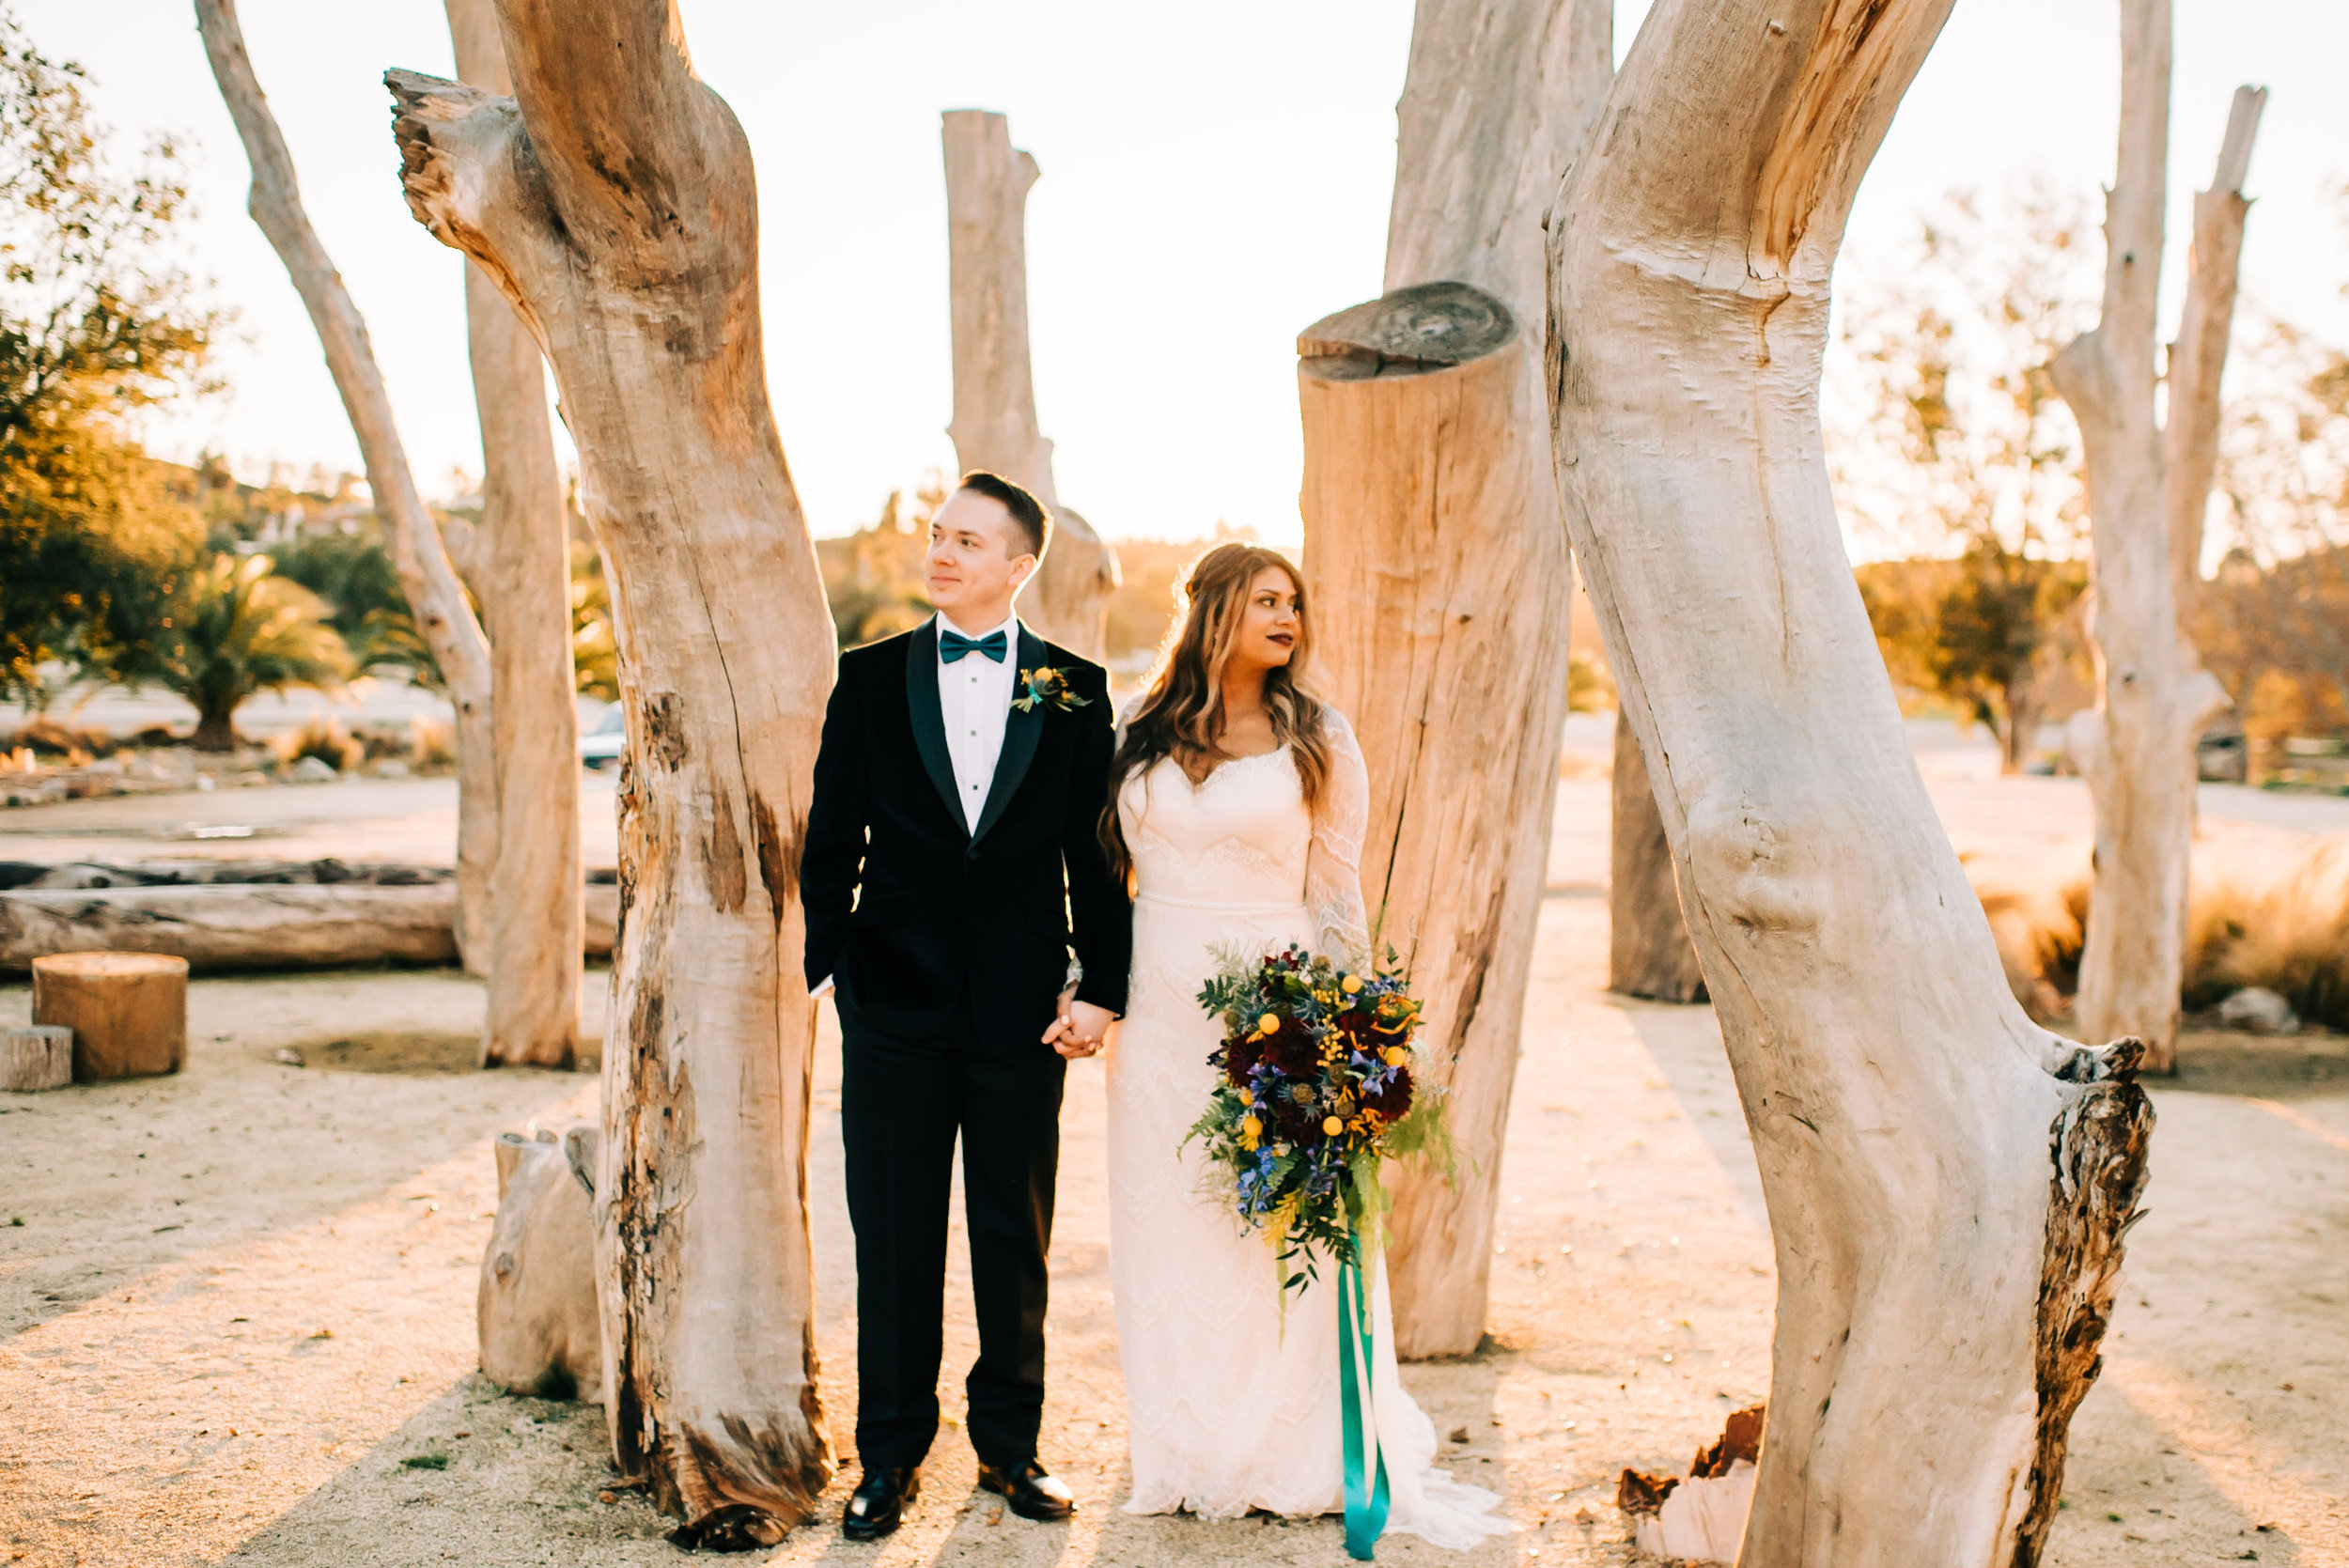 bay area nontraditional wedding photographer southern california boho wedding love light magic san francisco oakland northern california-922.jpg